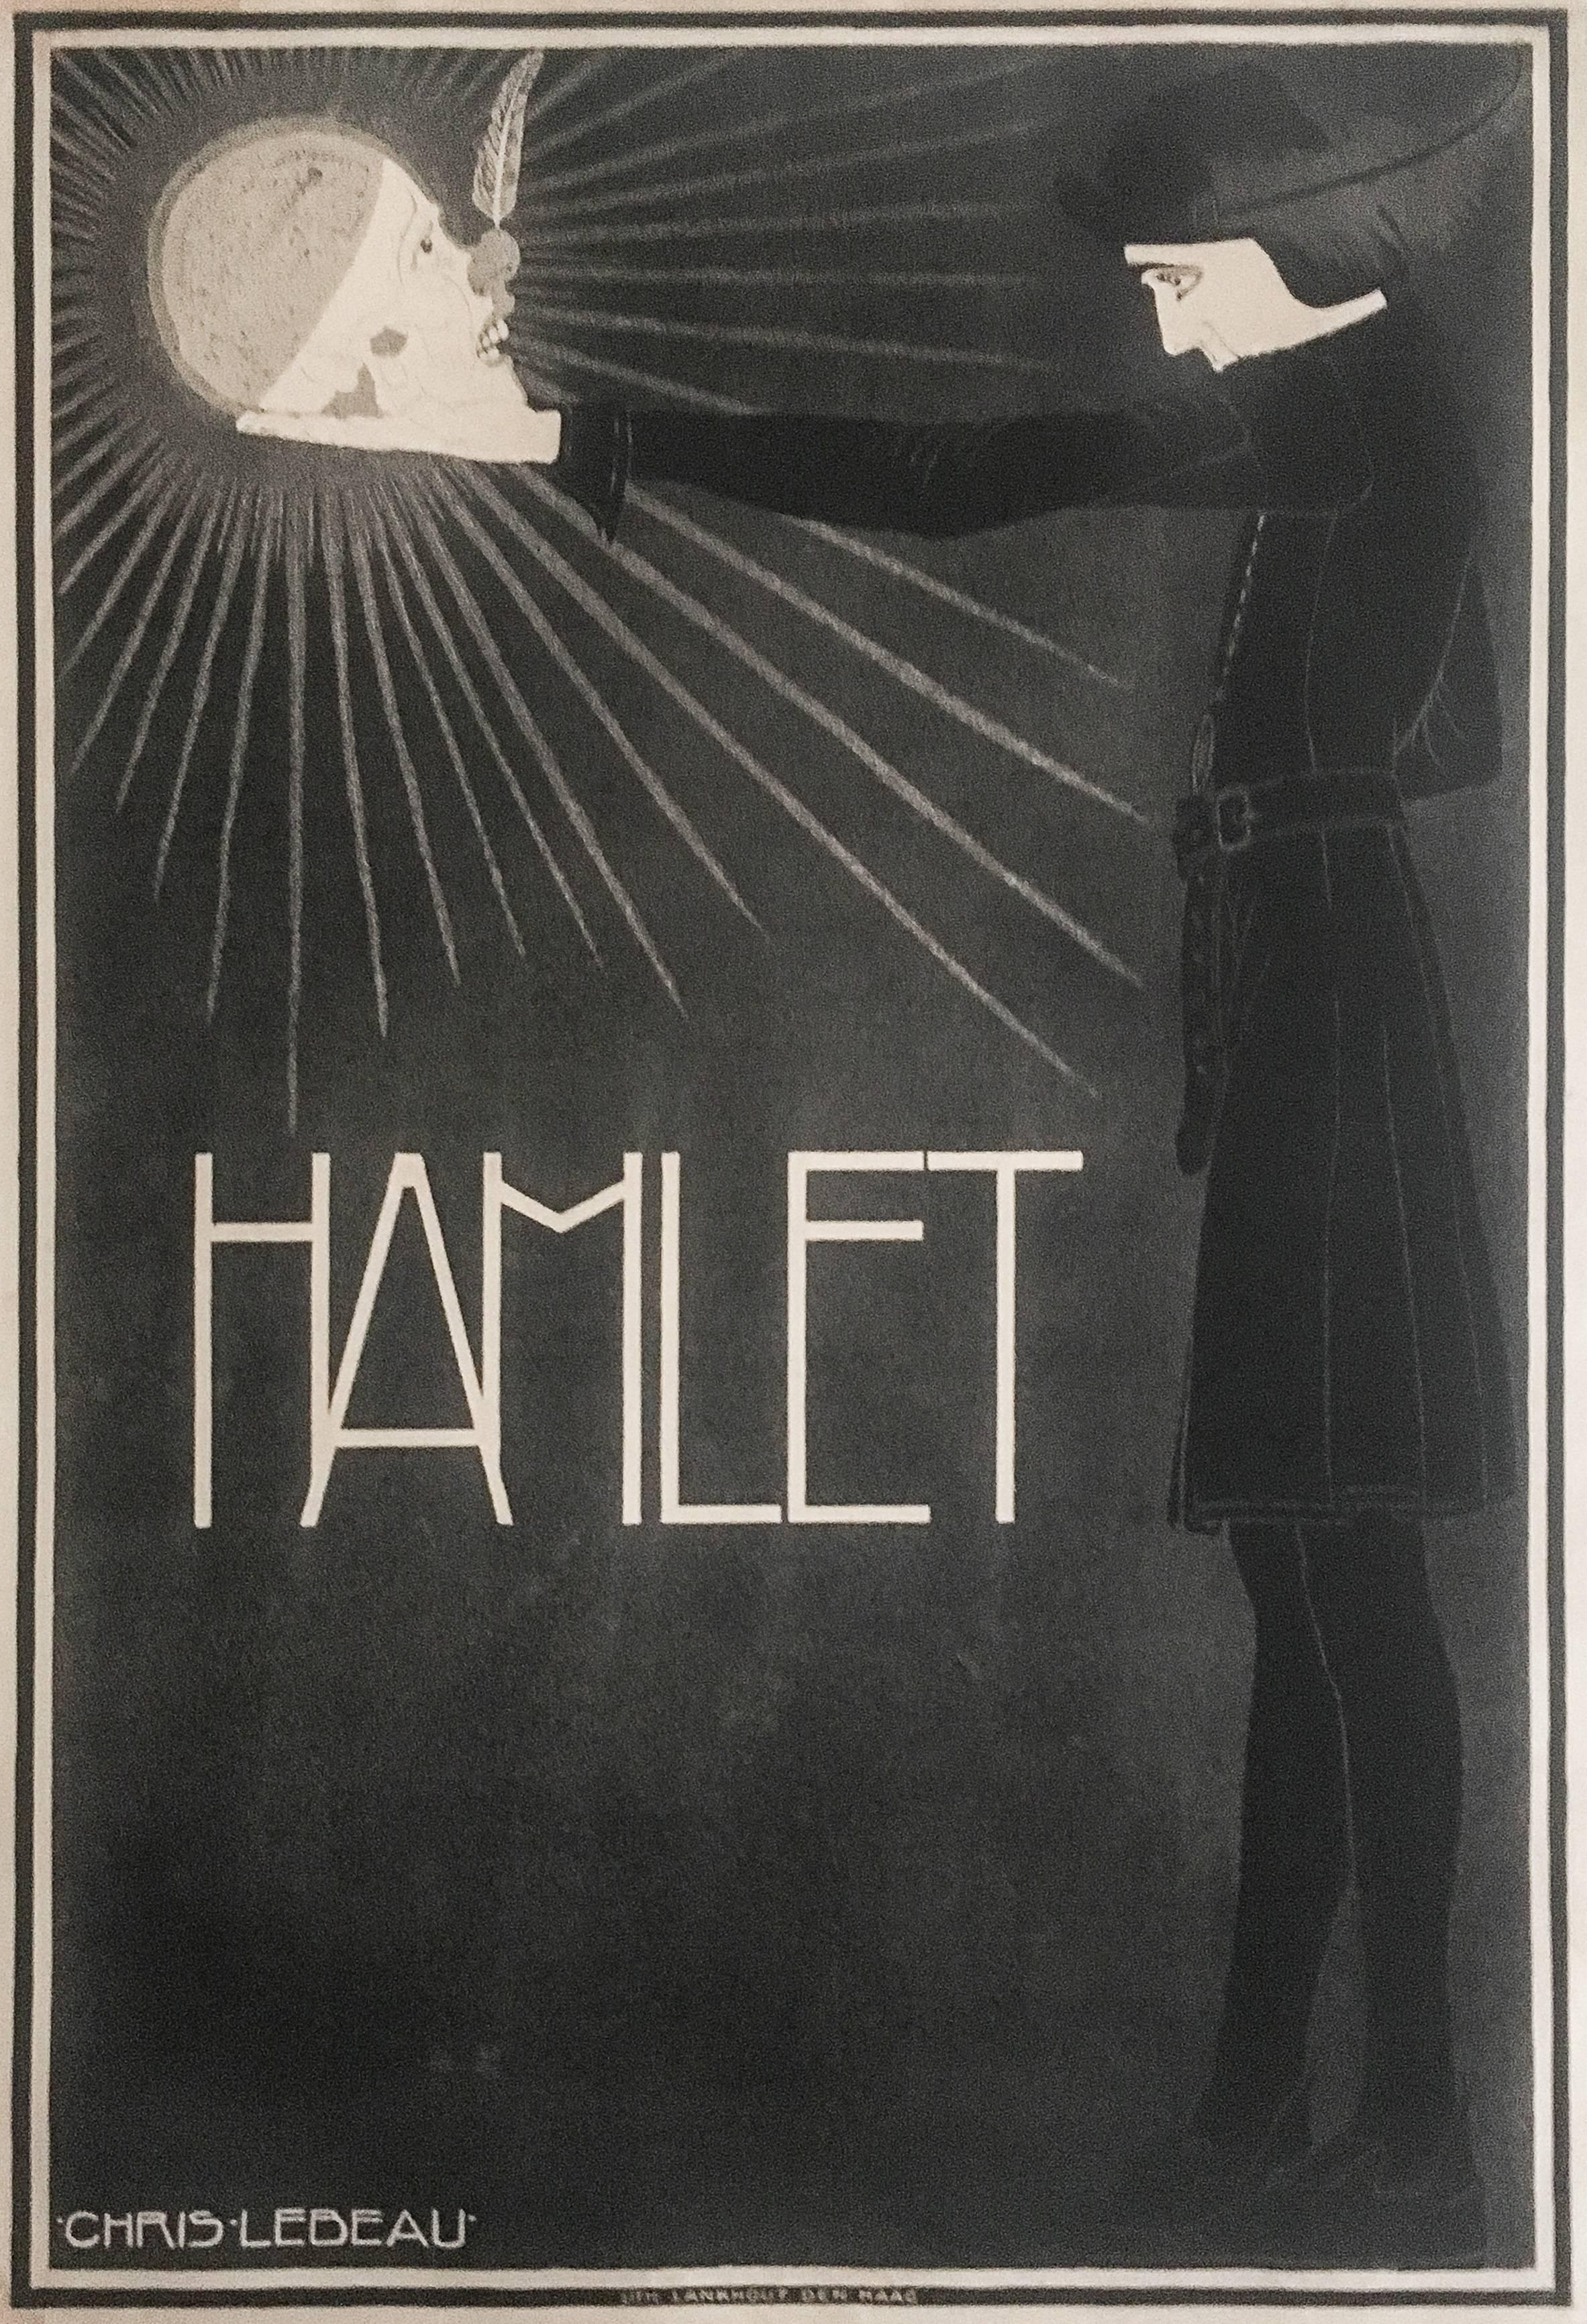 Chris Lebeau Portrait Print   Poster For Hamlet